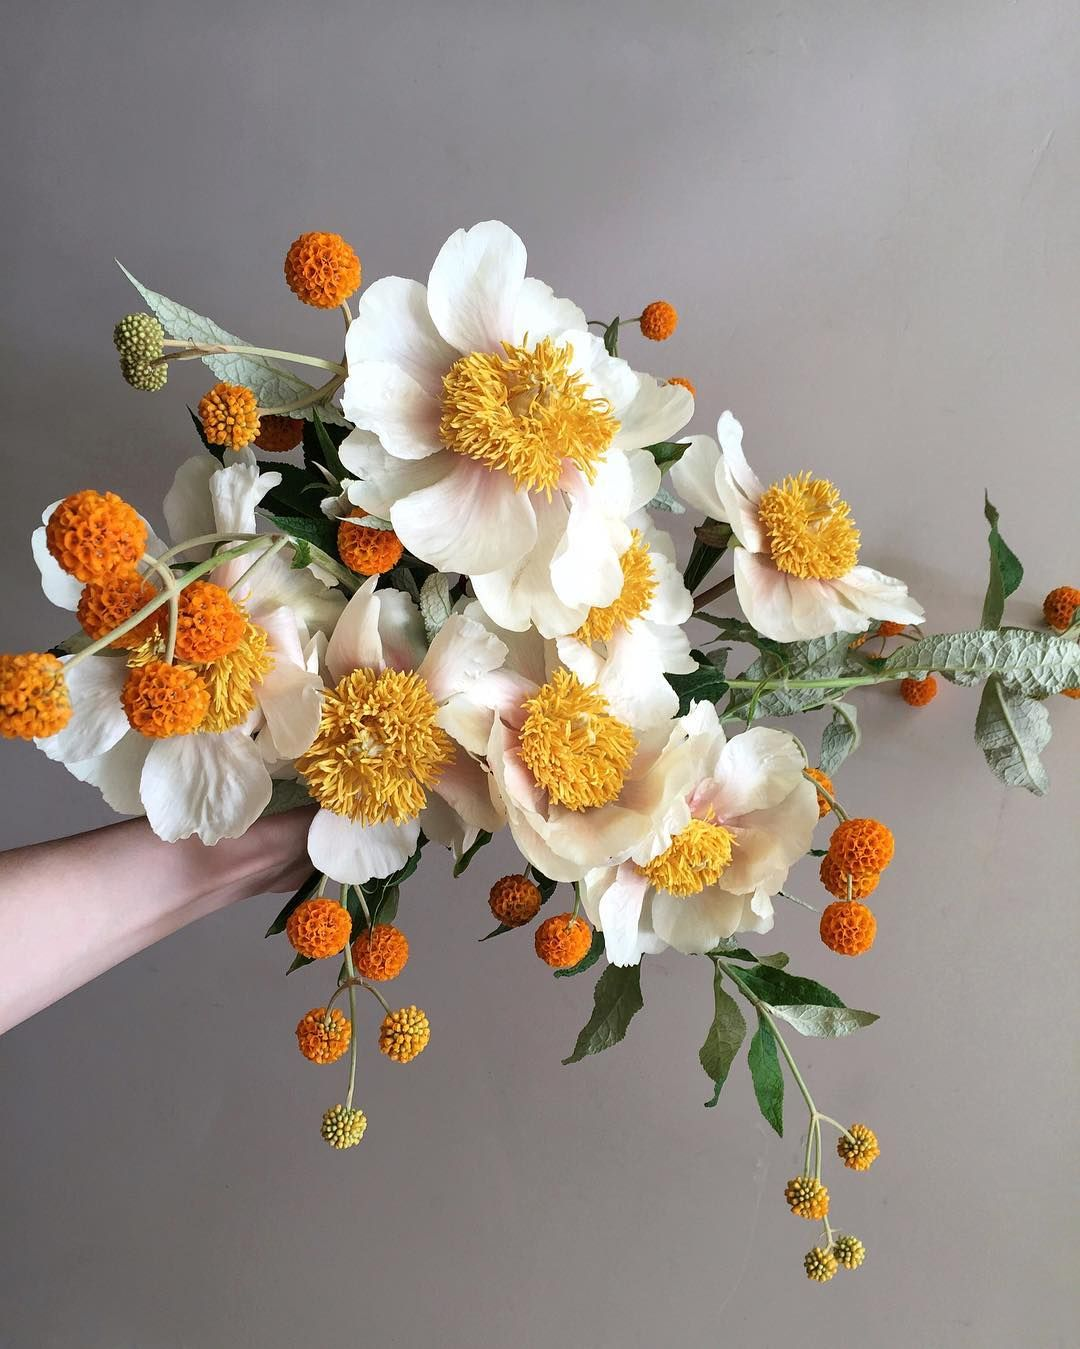 The happiest bouquet ever.